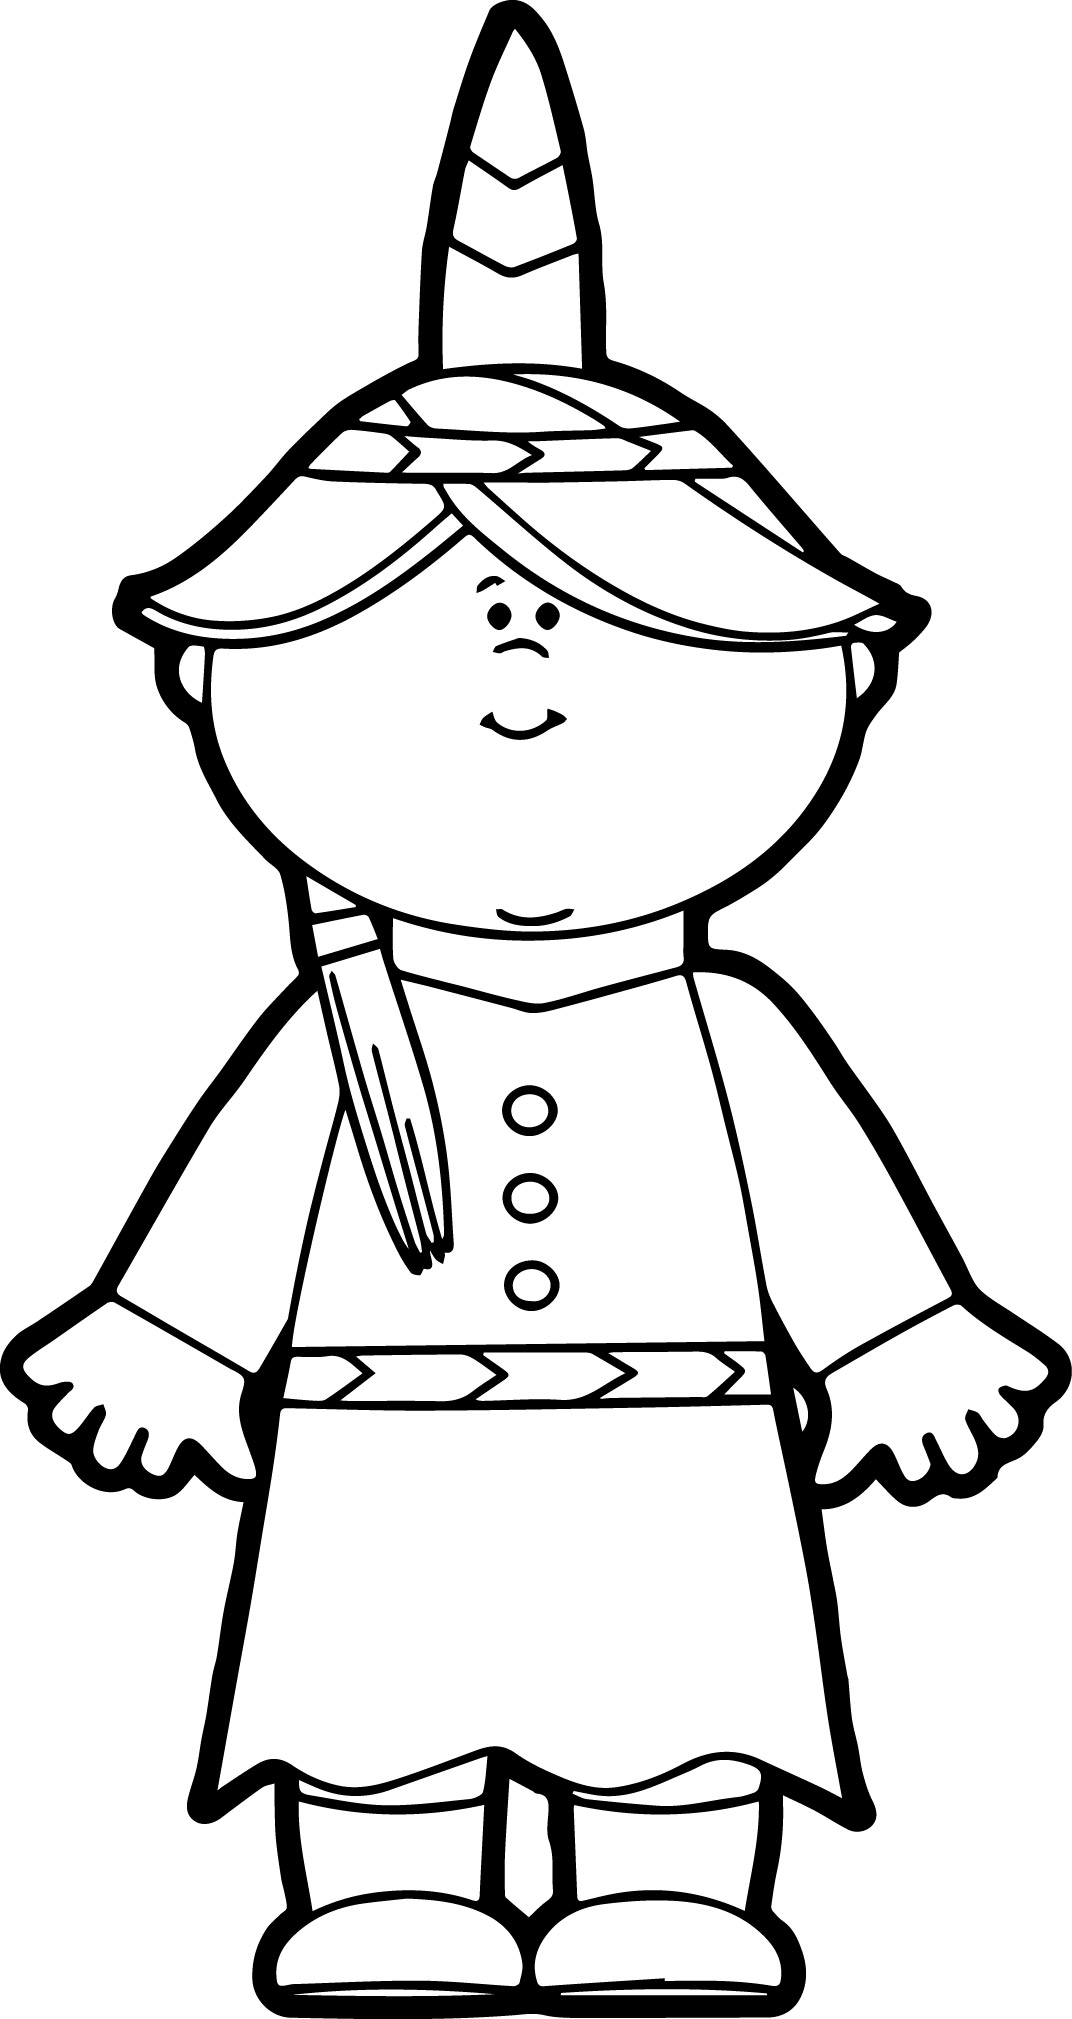 Native American Indian Girl Coloring Page | Wecoloringpage.com